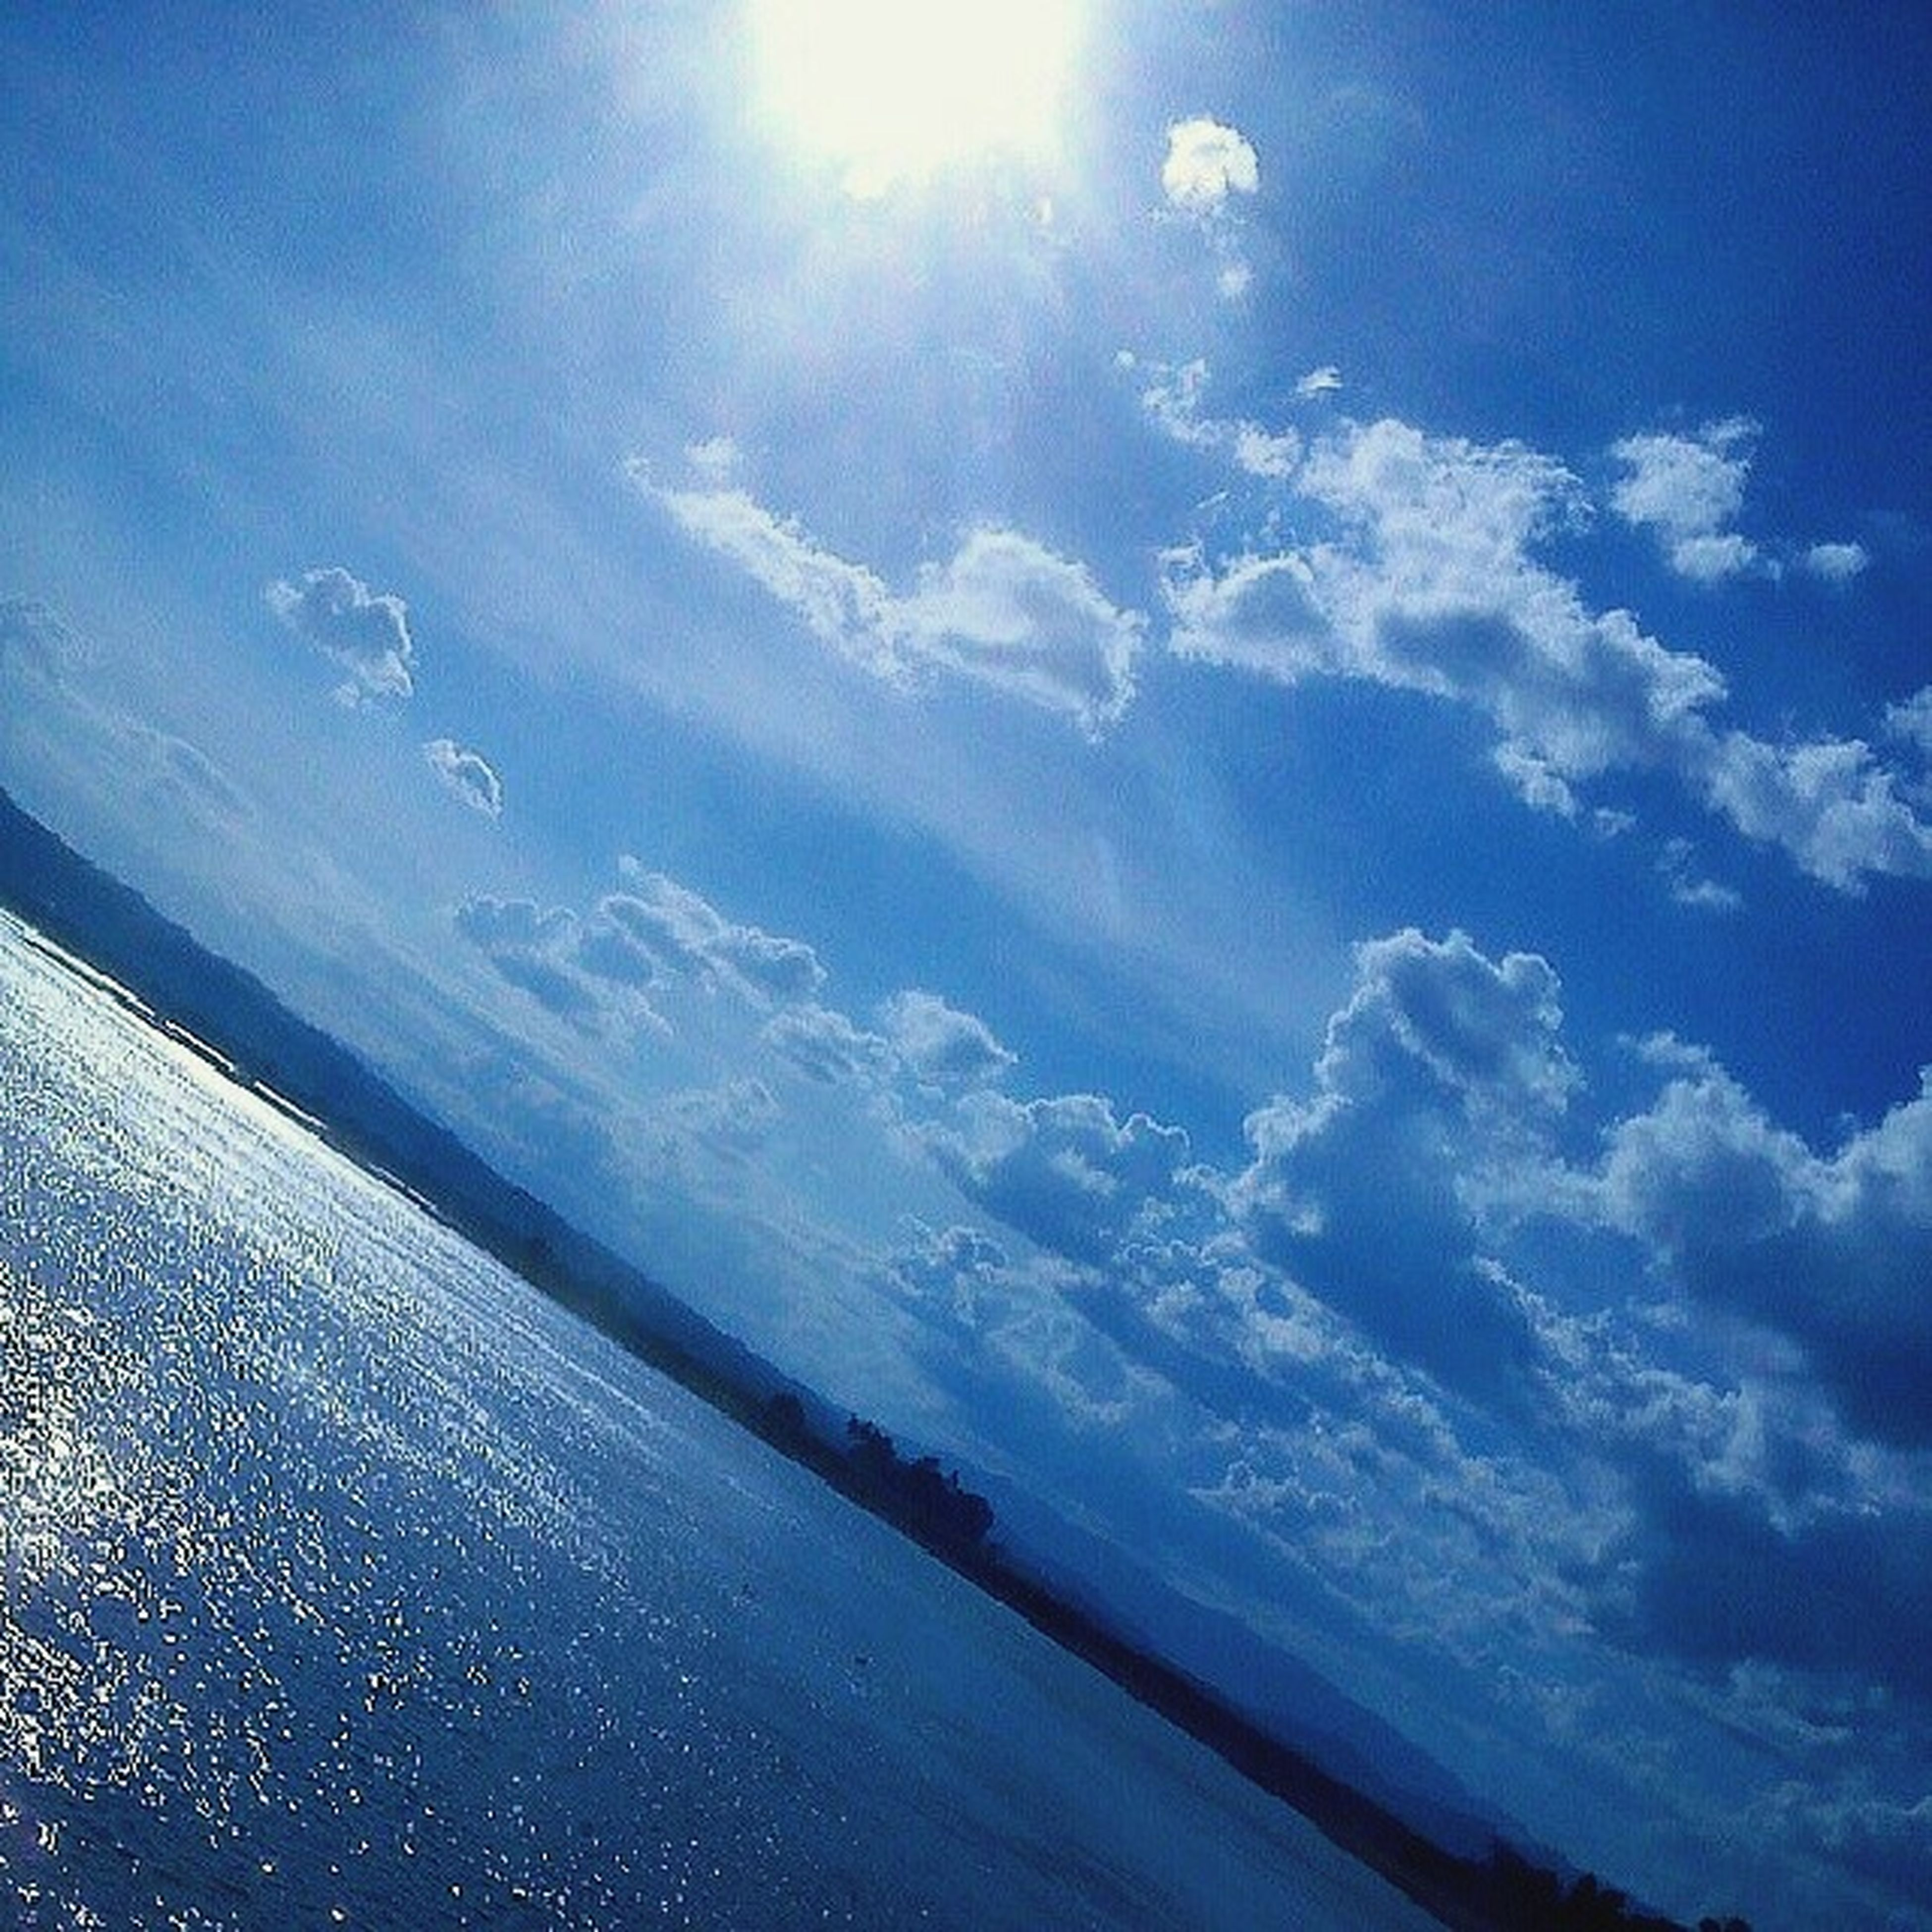 sky, blue, beauty in nature, scenics, sunlight, cloud - sky, sunbeam, tranquility, nature, tranquil scene, sea, sun, cloud, day, water, aerial view, idyllic, sunny, outdoors, lens flare